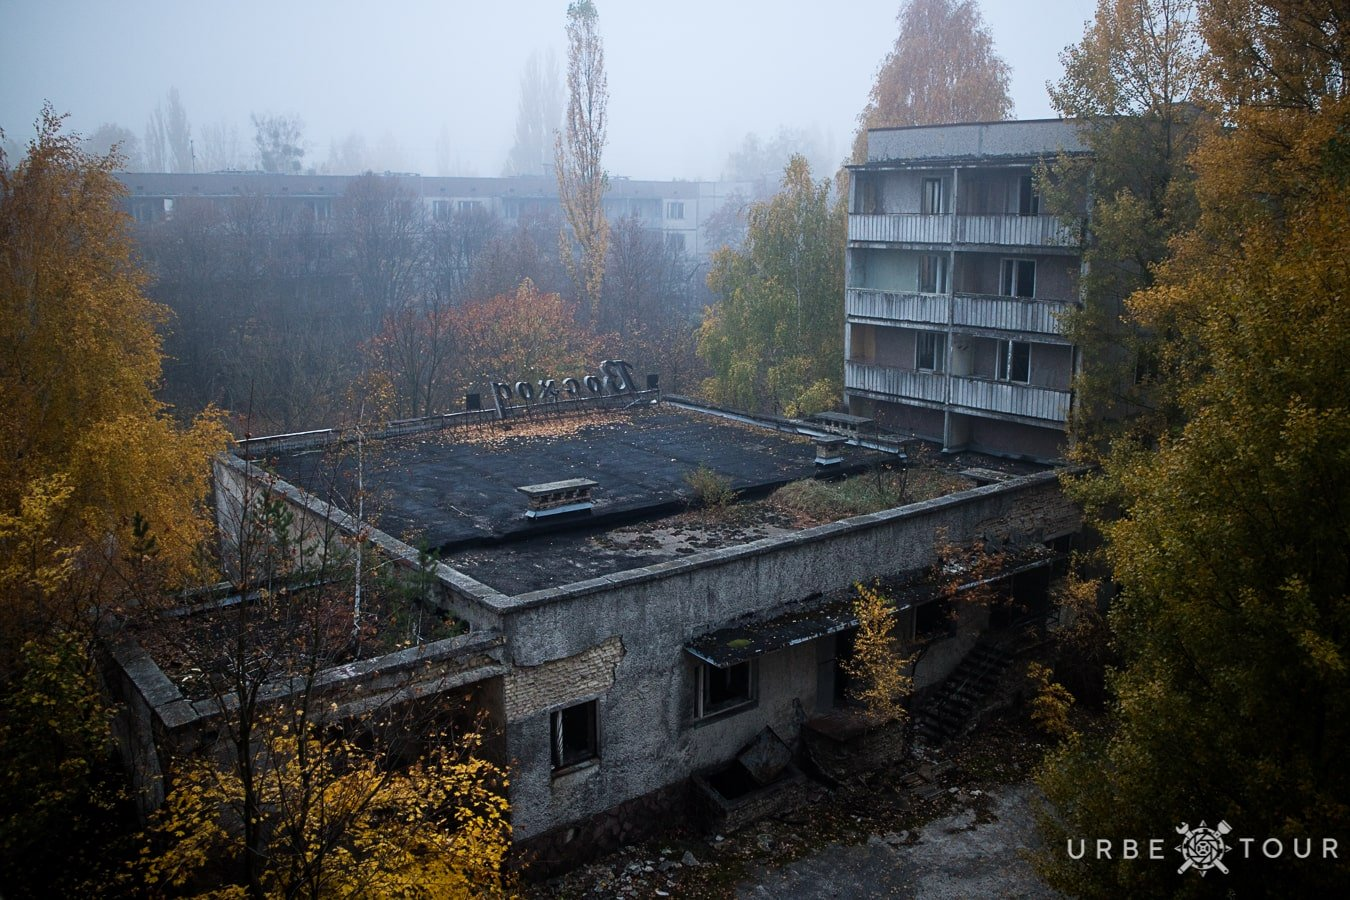 chernobyl-exploration-tour-throw-golden-autumn-61 Chernobyl URBEX Tour Through Golden Autumn